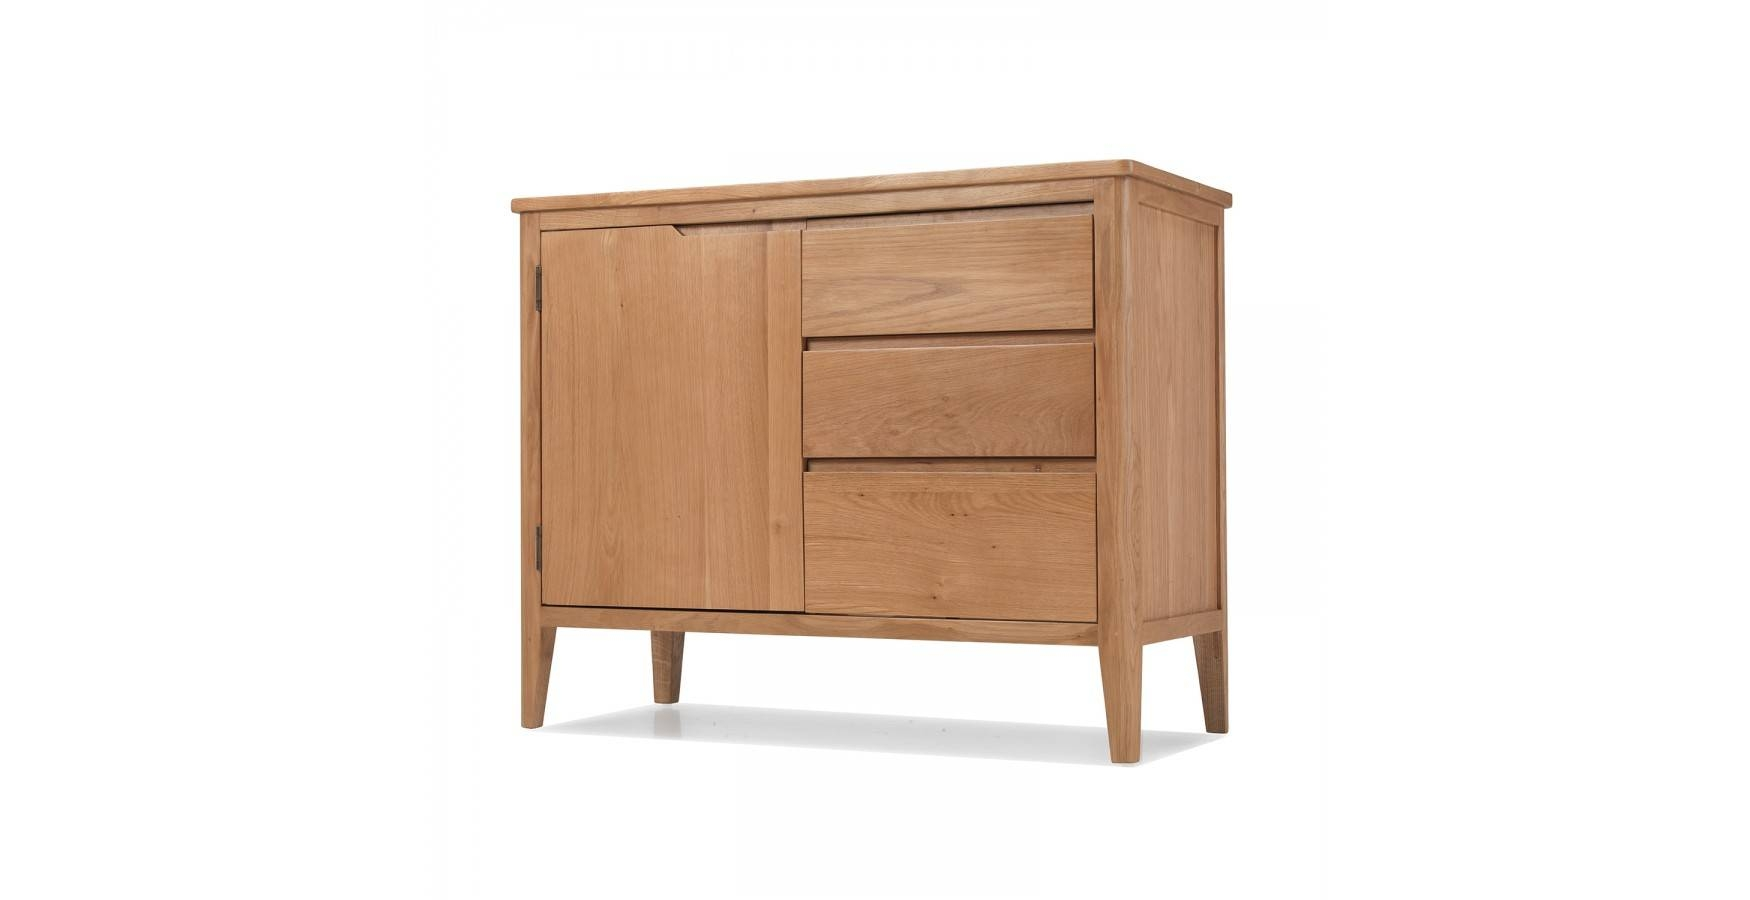 Cadley Oak Small Sideboard With Drawers – Lifestyle Furniture Uk In Small Sideboards With Drawers (View 3 of 15)